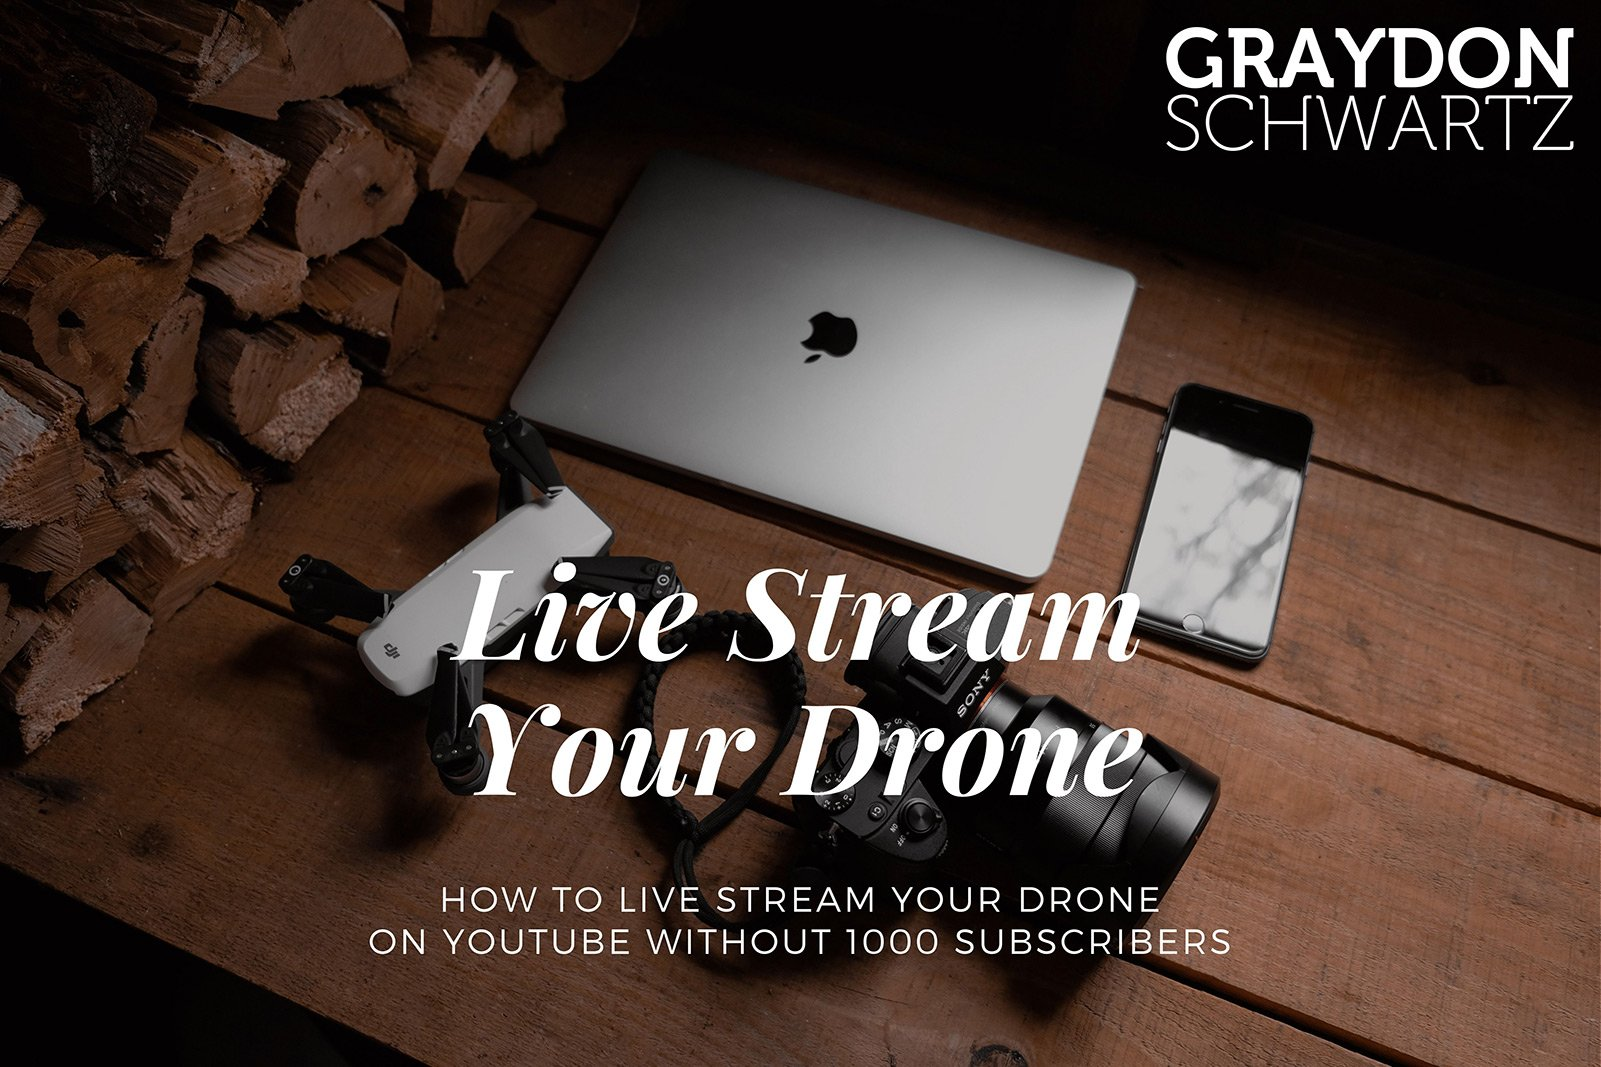 How to Live Stream Your Drone on YouTube Without 1000 Subscribers